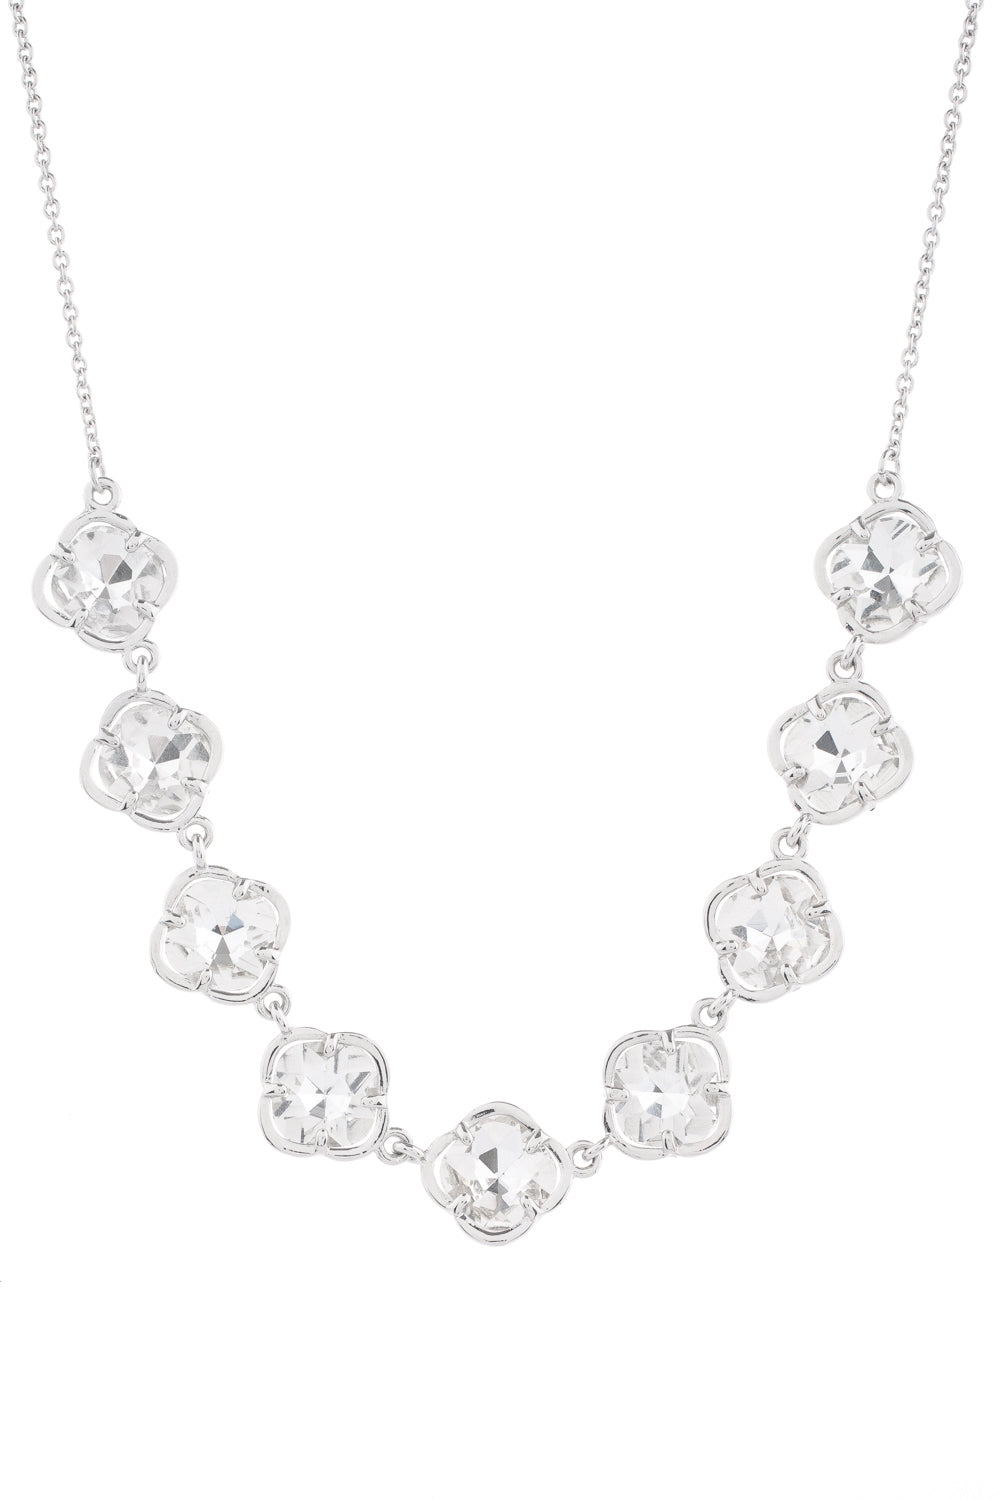 Type 4 Alluring Diamonds Necklace